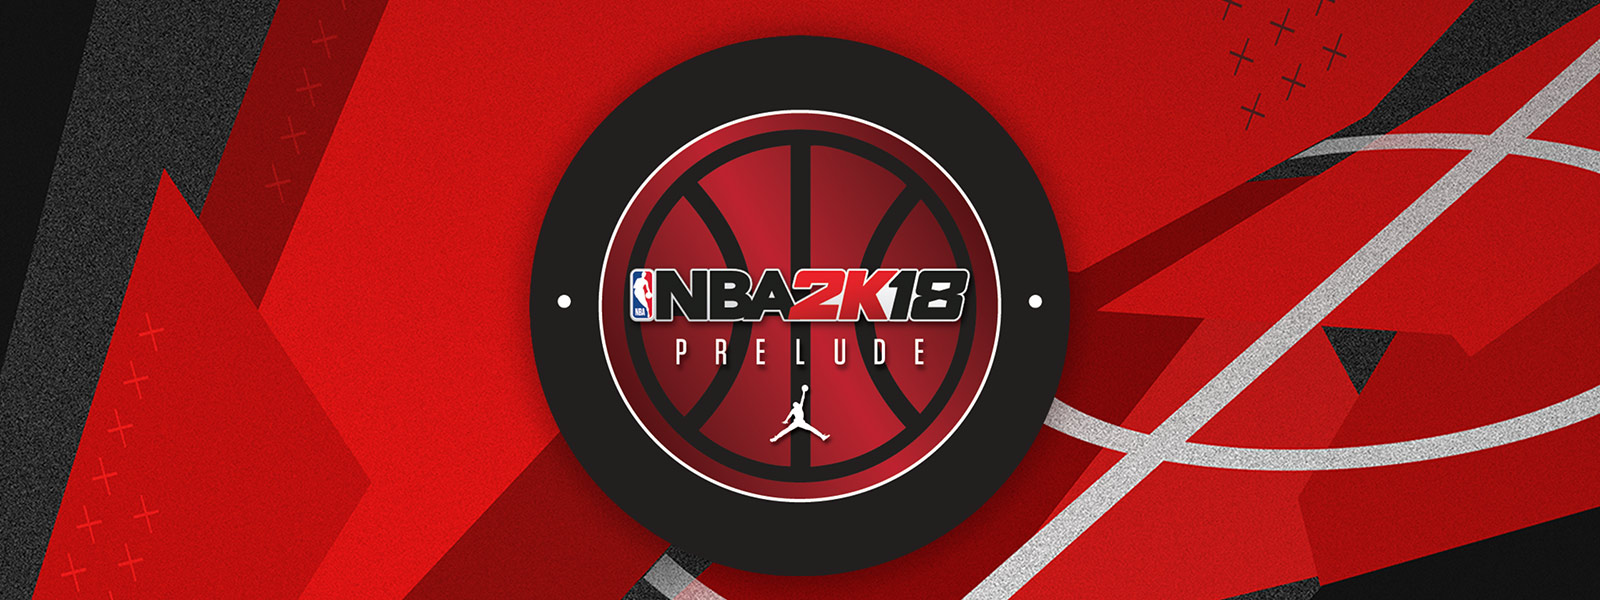 NBA 2k18: The Prelude, on red abstract background